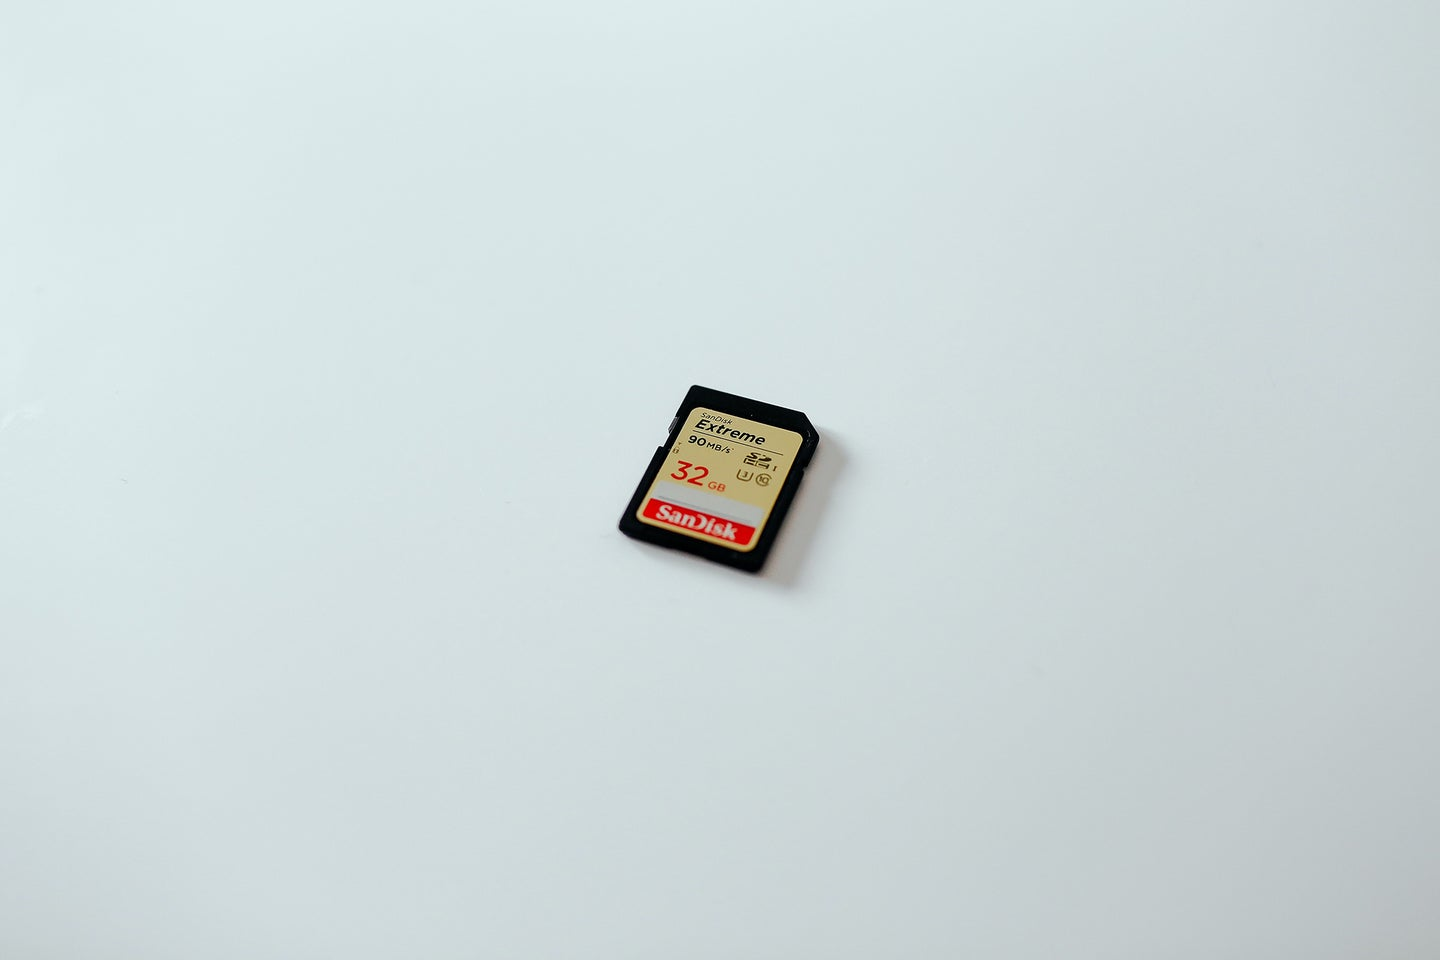 Fastest sd card on a white surface